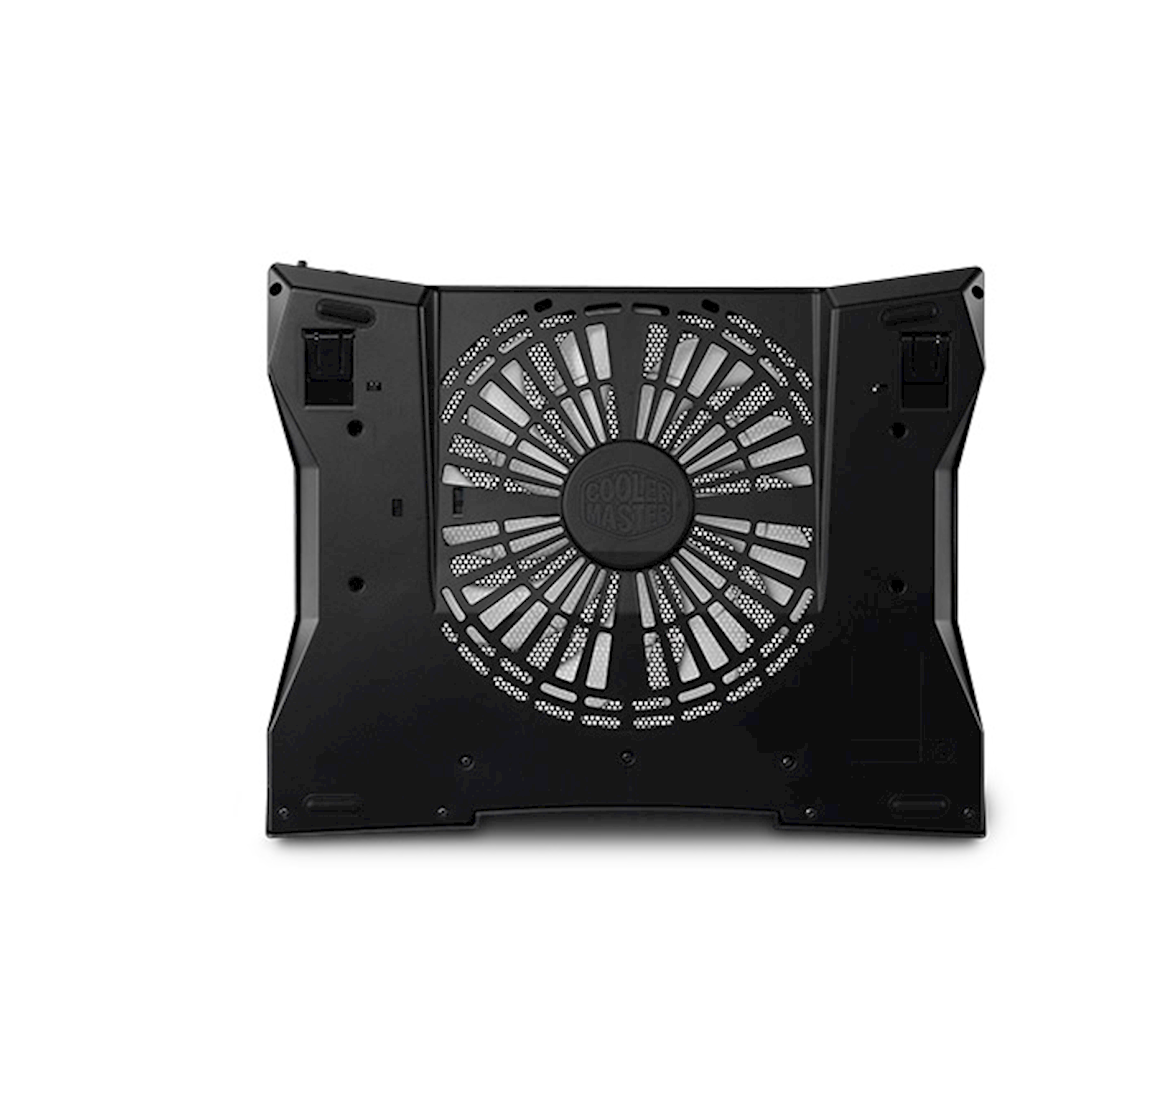 Silent 230mm Fan For Laptop Cooling